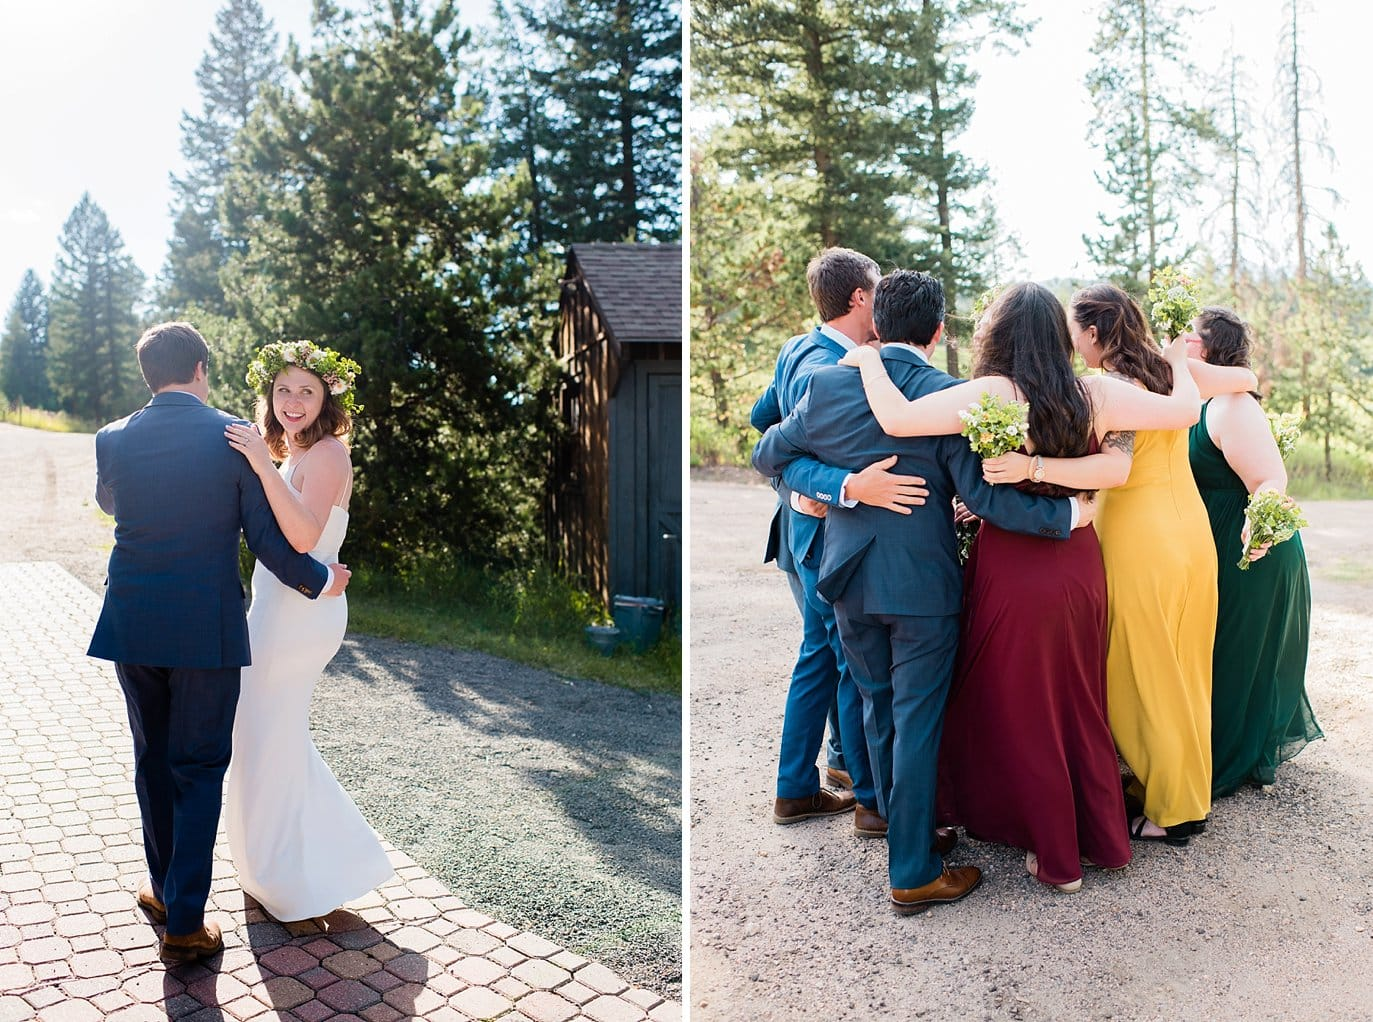 celebratory bridal party hug after outdoor ceremony photo